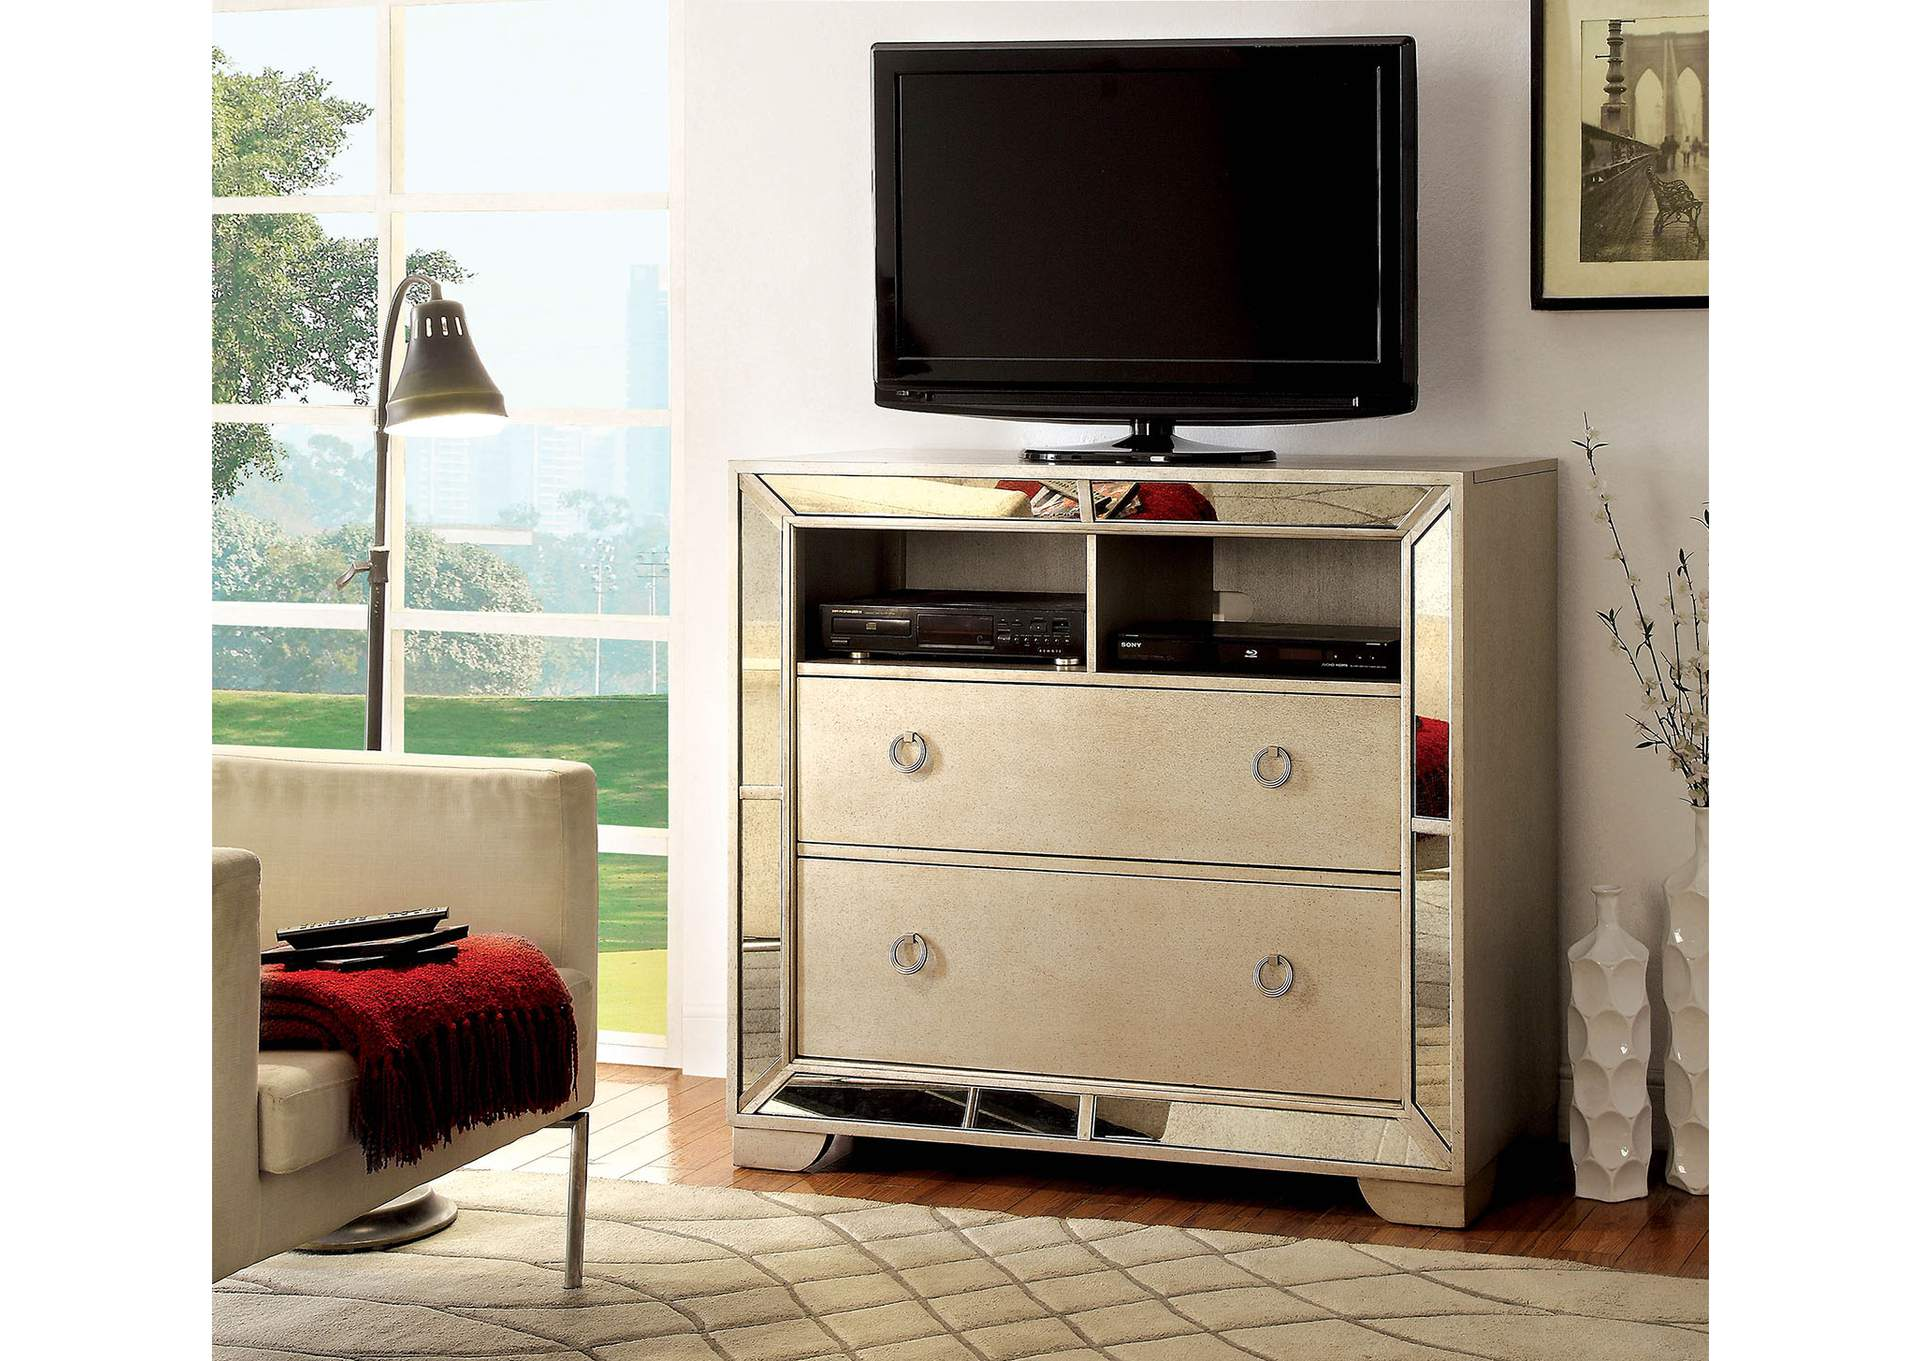 bedroom media chest. Loraine Silver Media Chest w Antique Mirror Panels Organize Your Electronics with Our Versatile Bedroom Chests